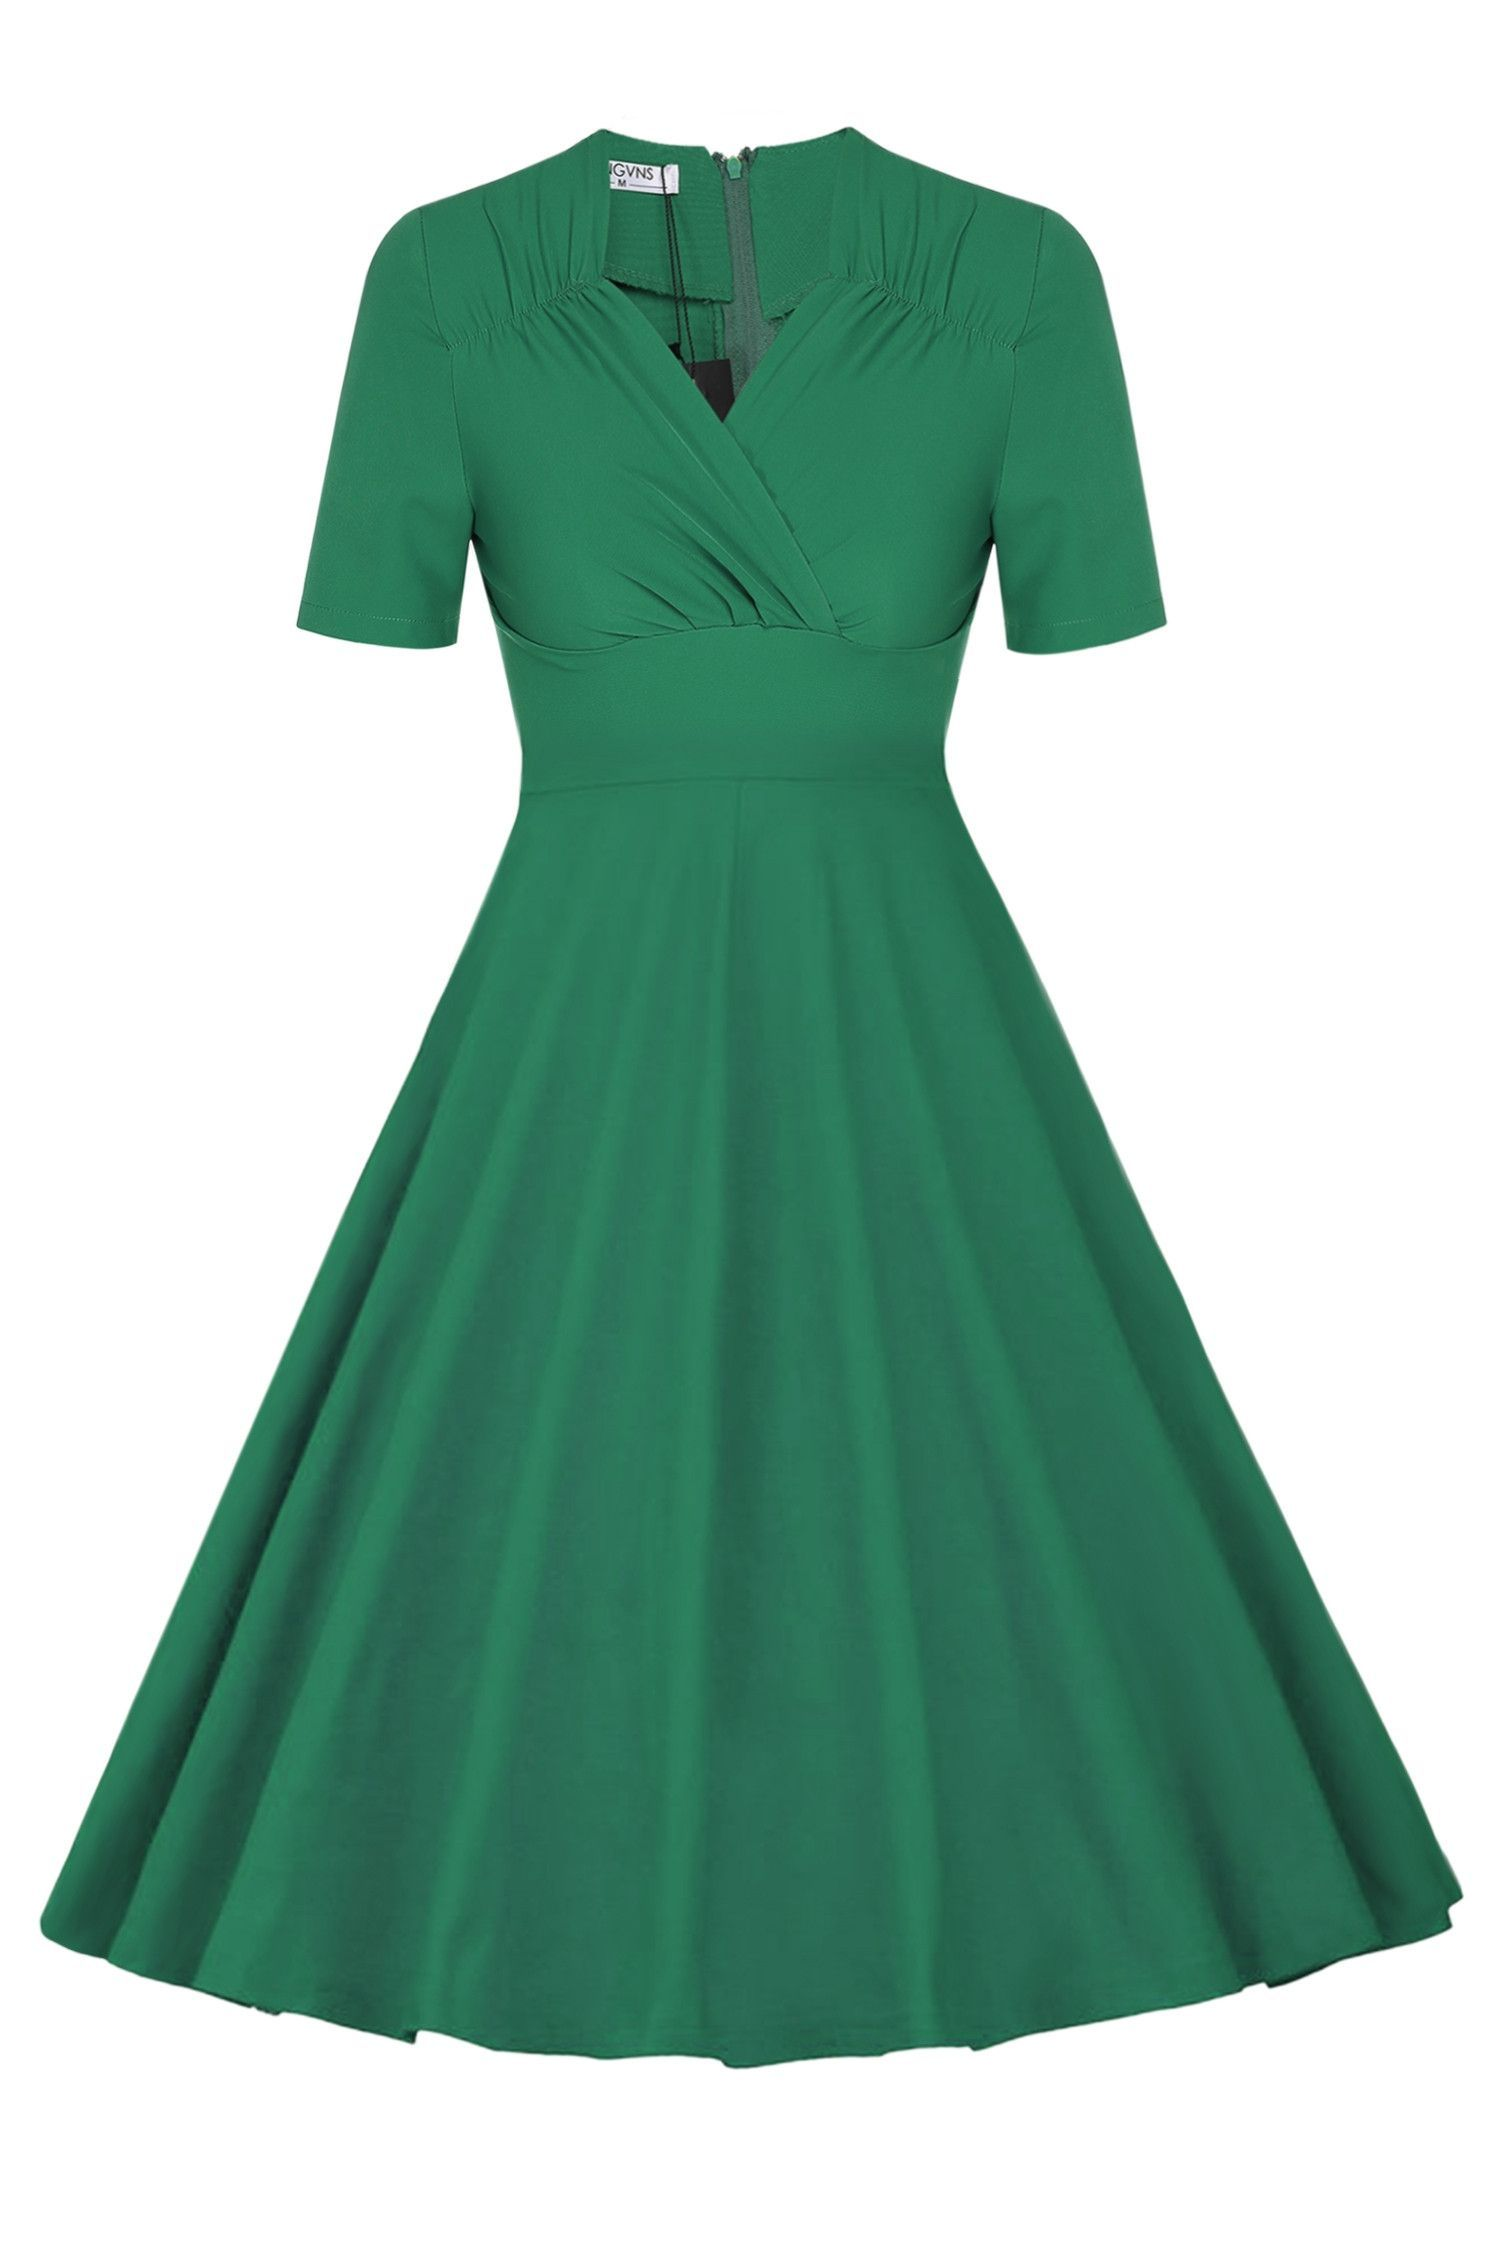 Women Casual Vintage Style High Waist Solid Pleated Work Dresses